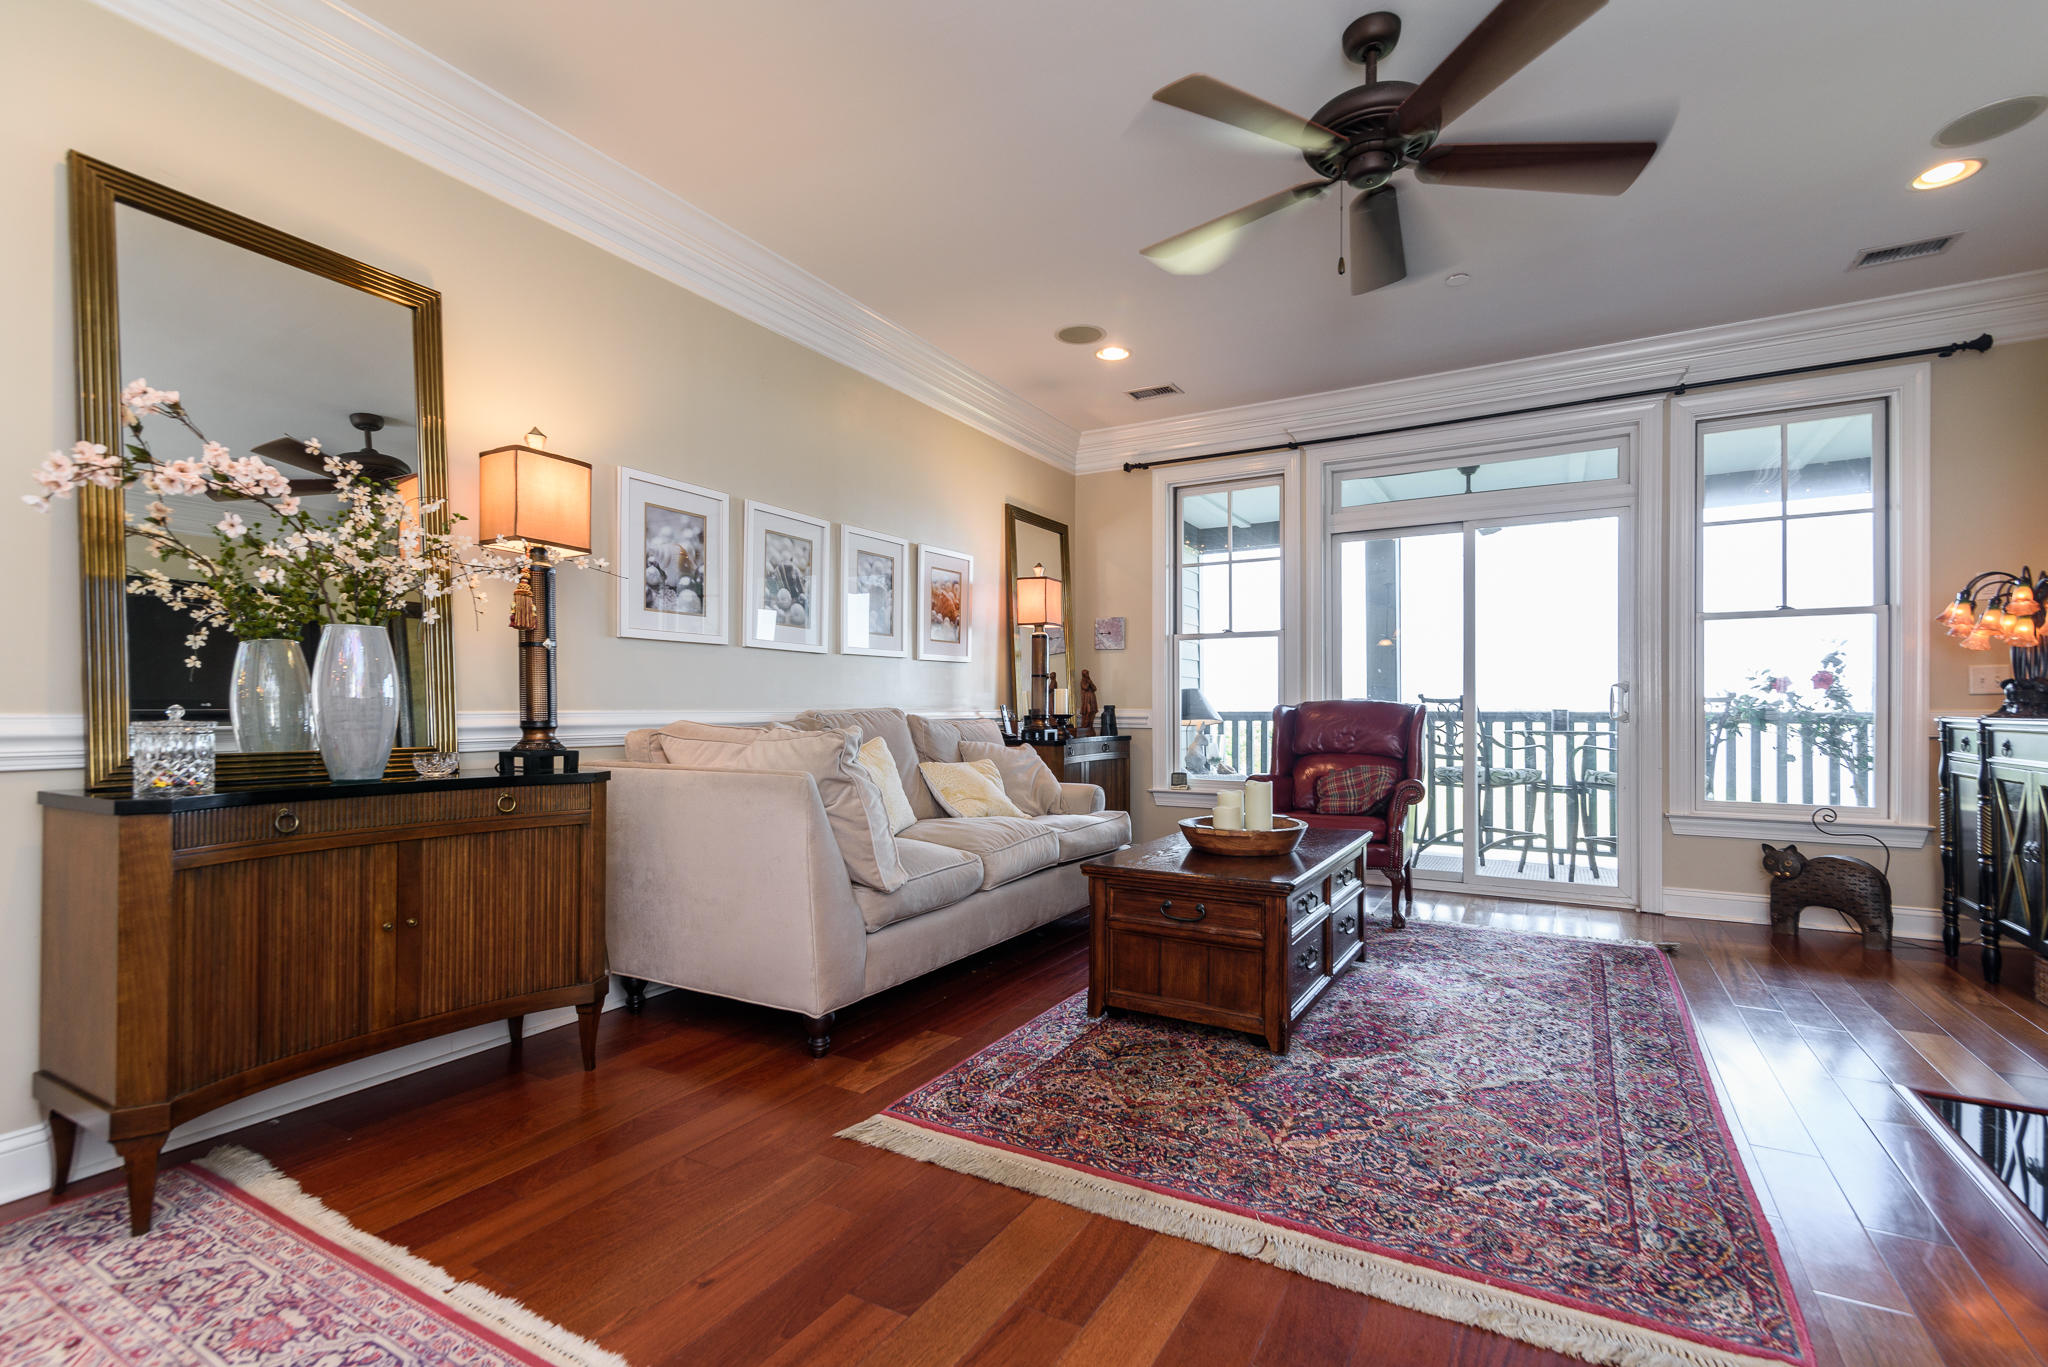 Sawyer's Landing Homes For Sale - 977 Cove Bay, Mount Pleasant, SC - 10